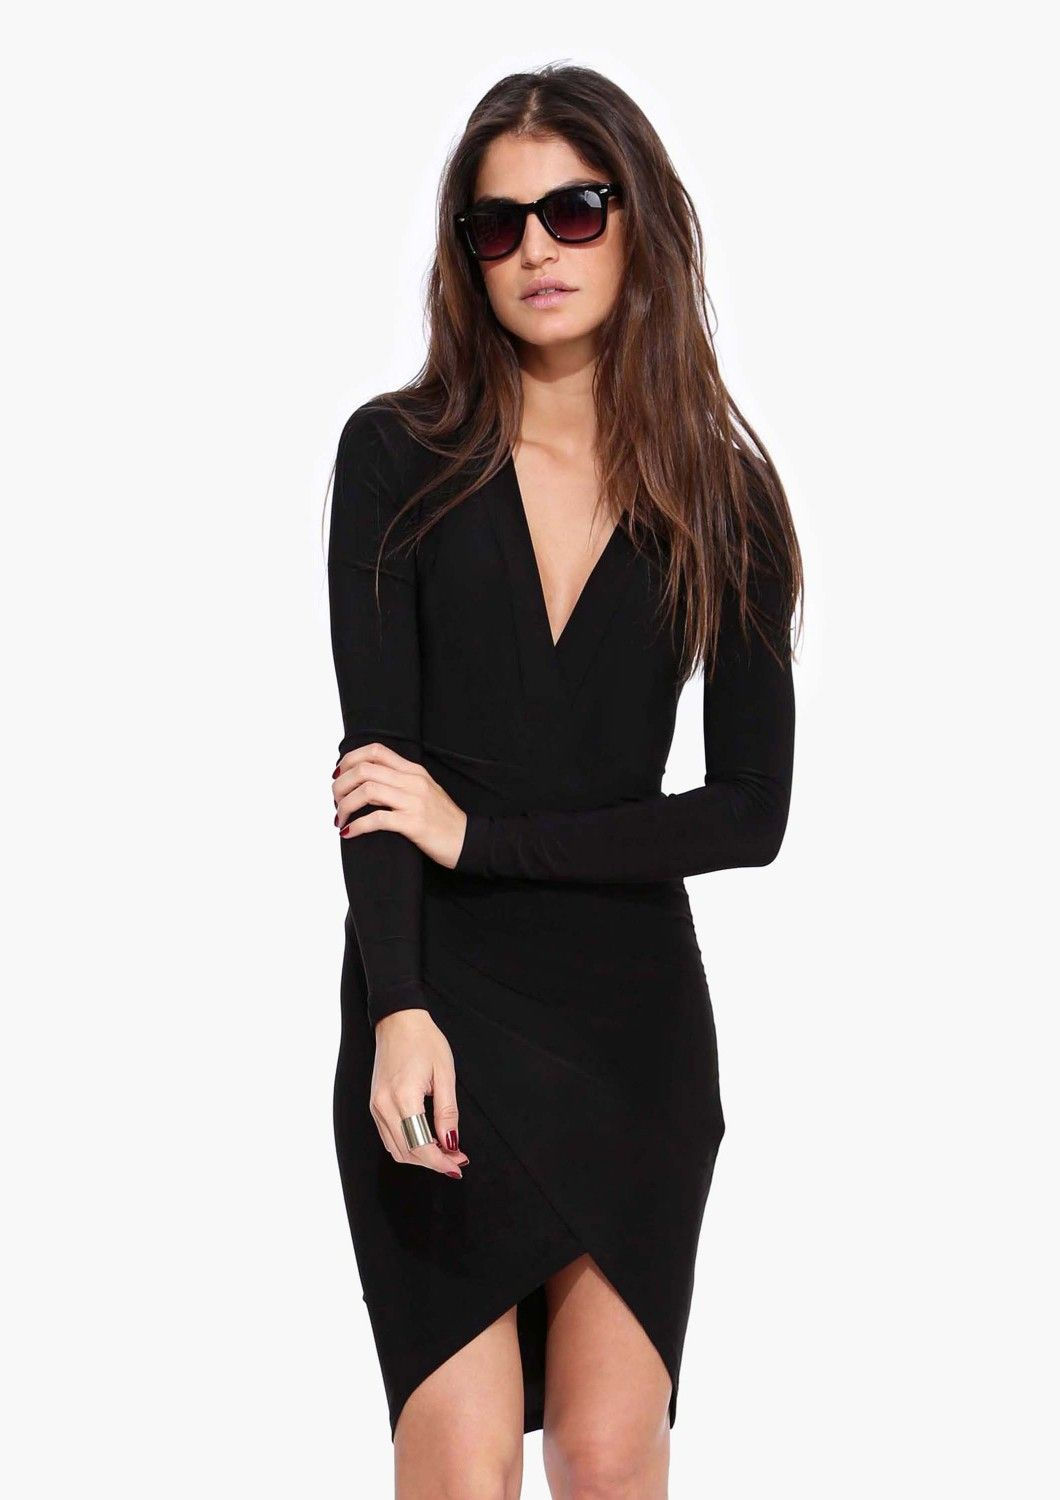 LBD: Long Sleeve Midi Bodycon Knit Dress in Black (also in RED)